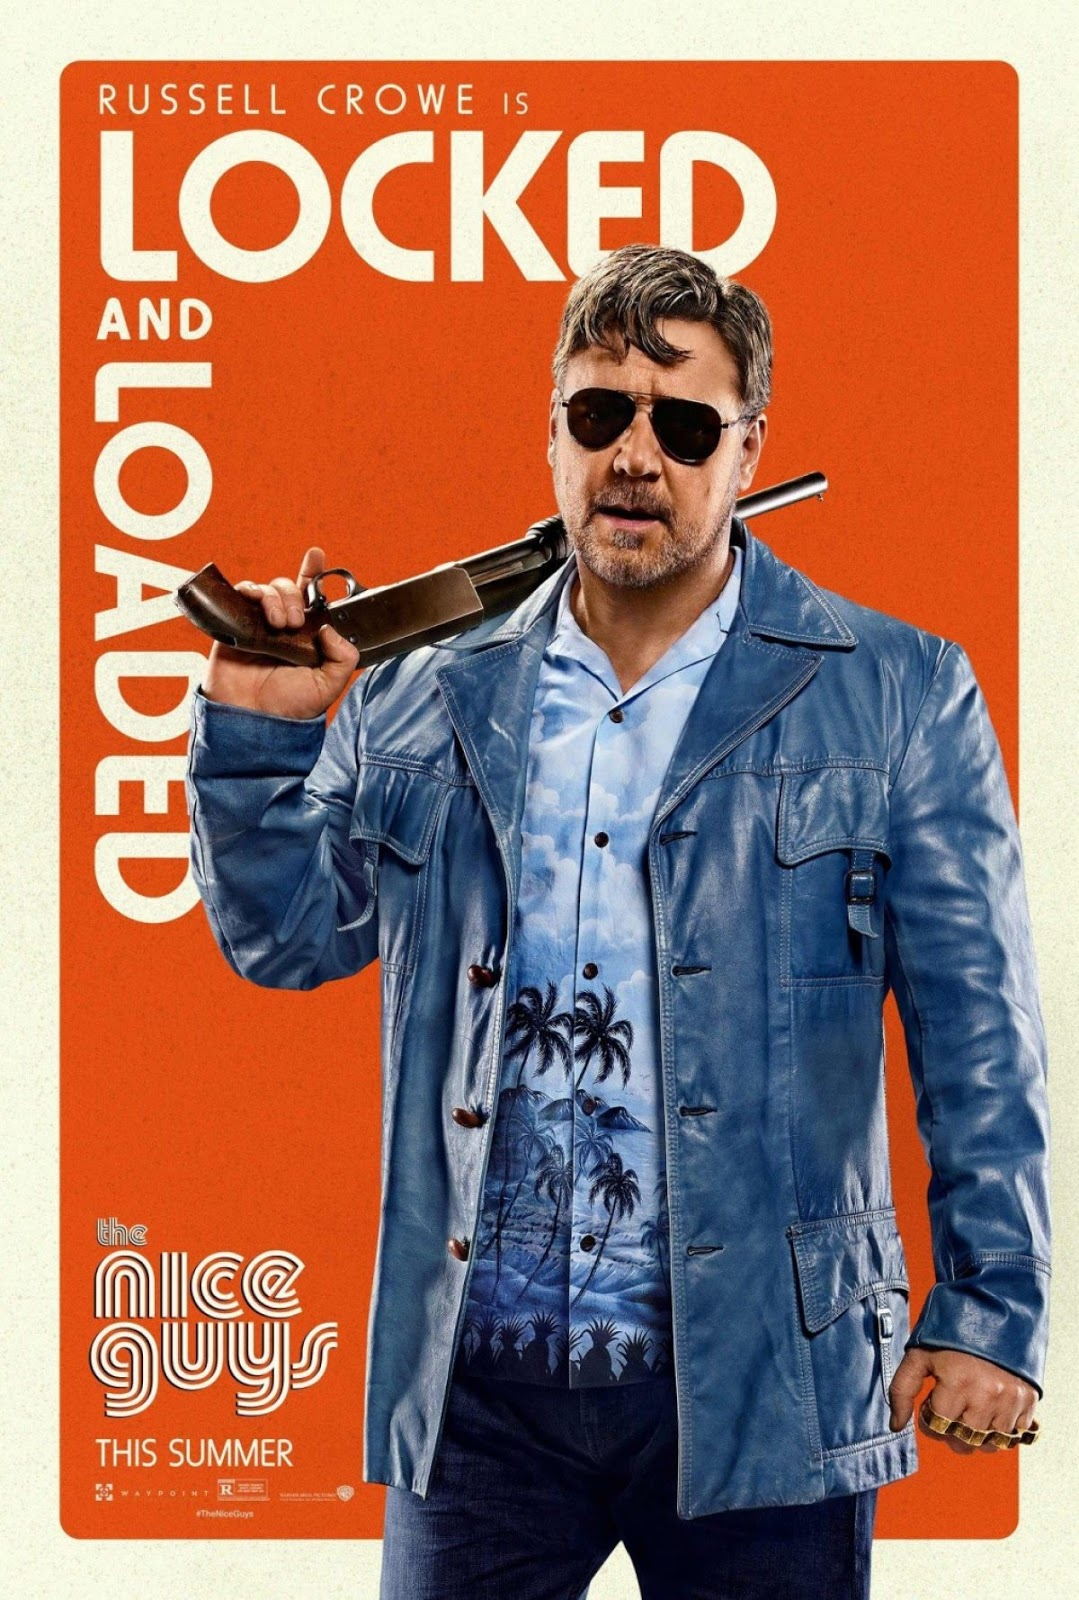 Russell Crowe And Ryan Gosling The Good Guys Movie Posters - Jason Santoro-2440